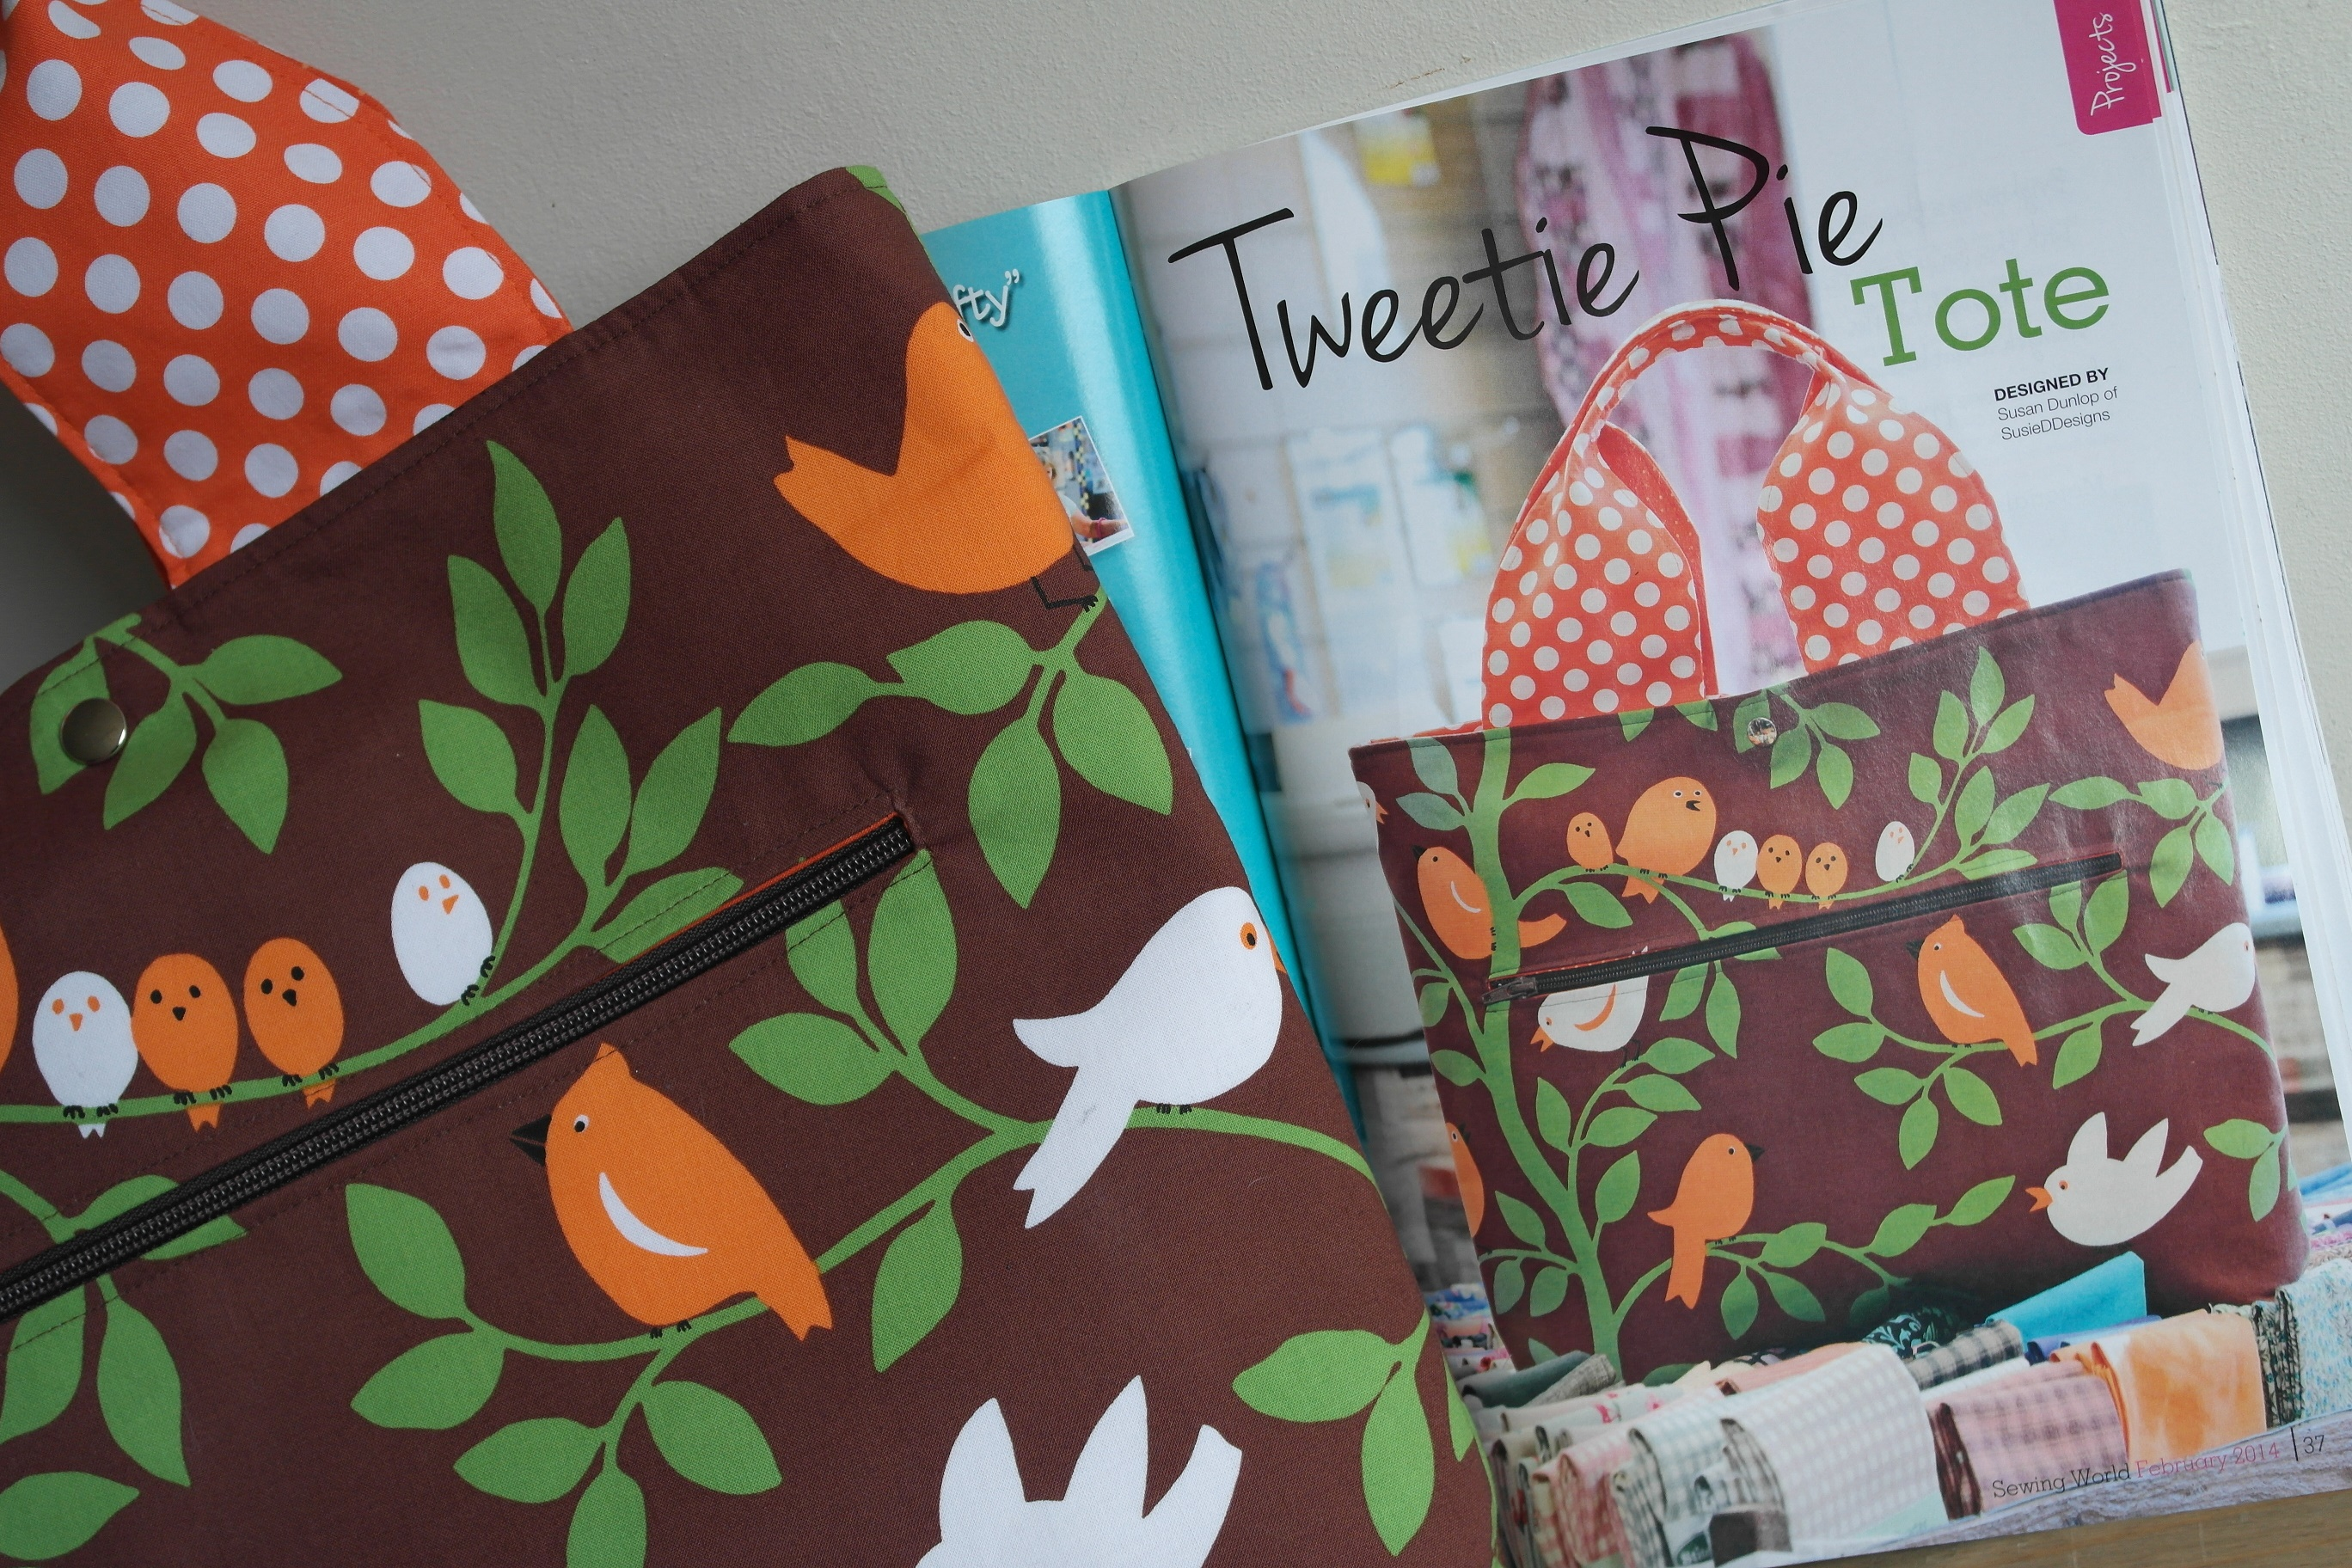 New bag making project featured in sewing world magazine tweetie pie shopper sewing project by susan dunlop in sewing world magazine jeuxipadfo Image collections